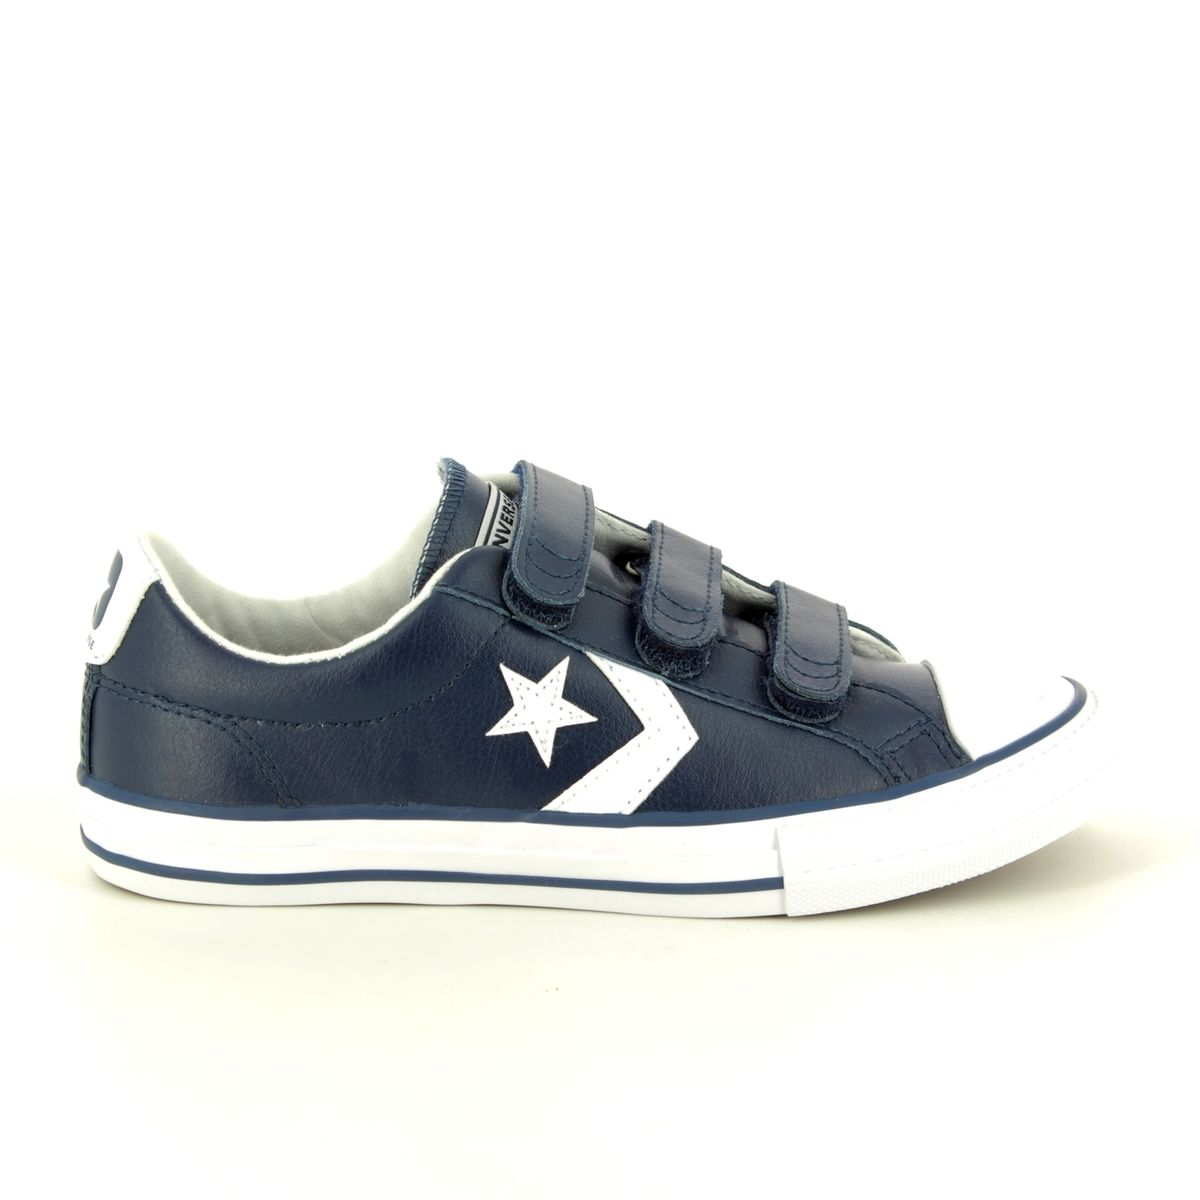 a87c647261f Converse Trainers - Navy - 646139C STAR PLAYER VELCRO